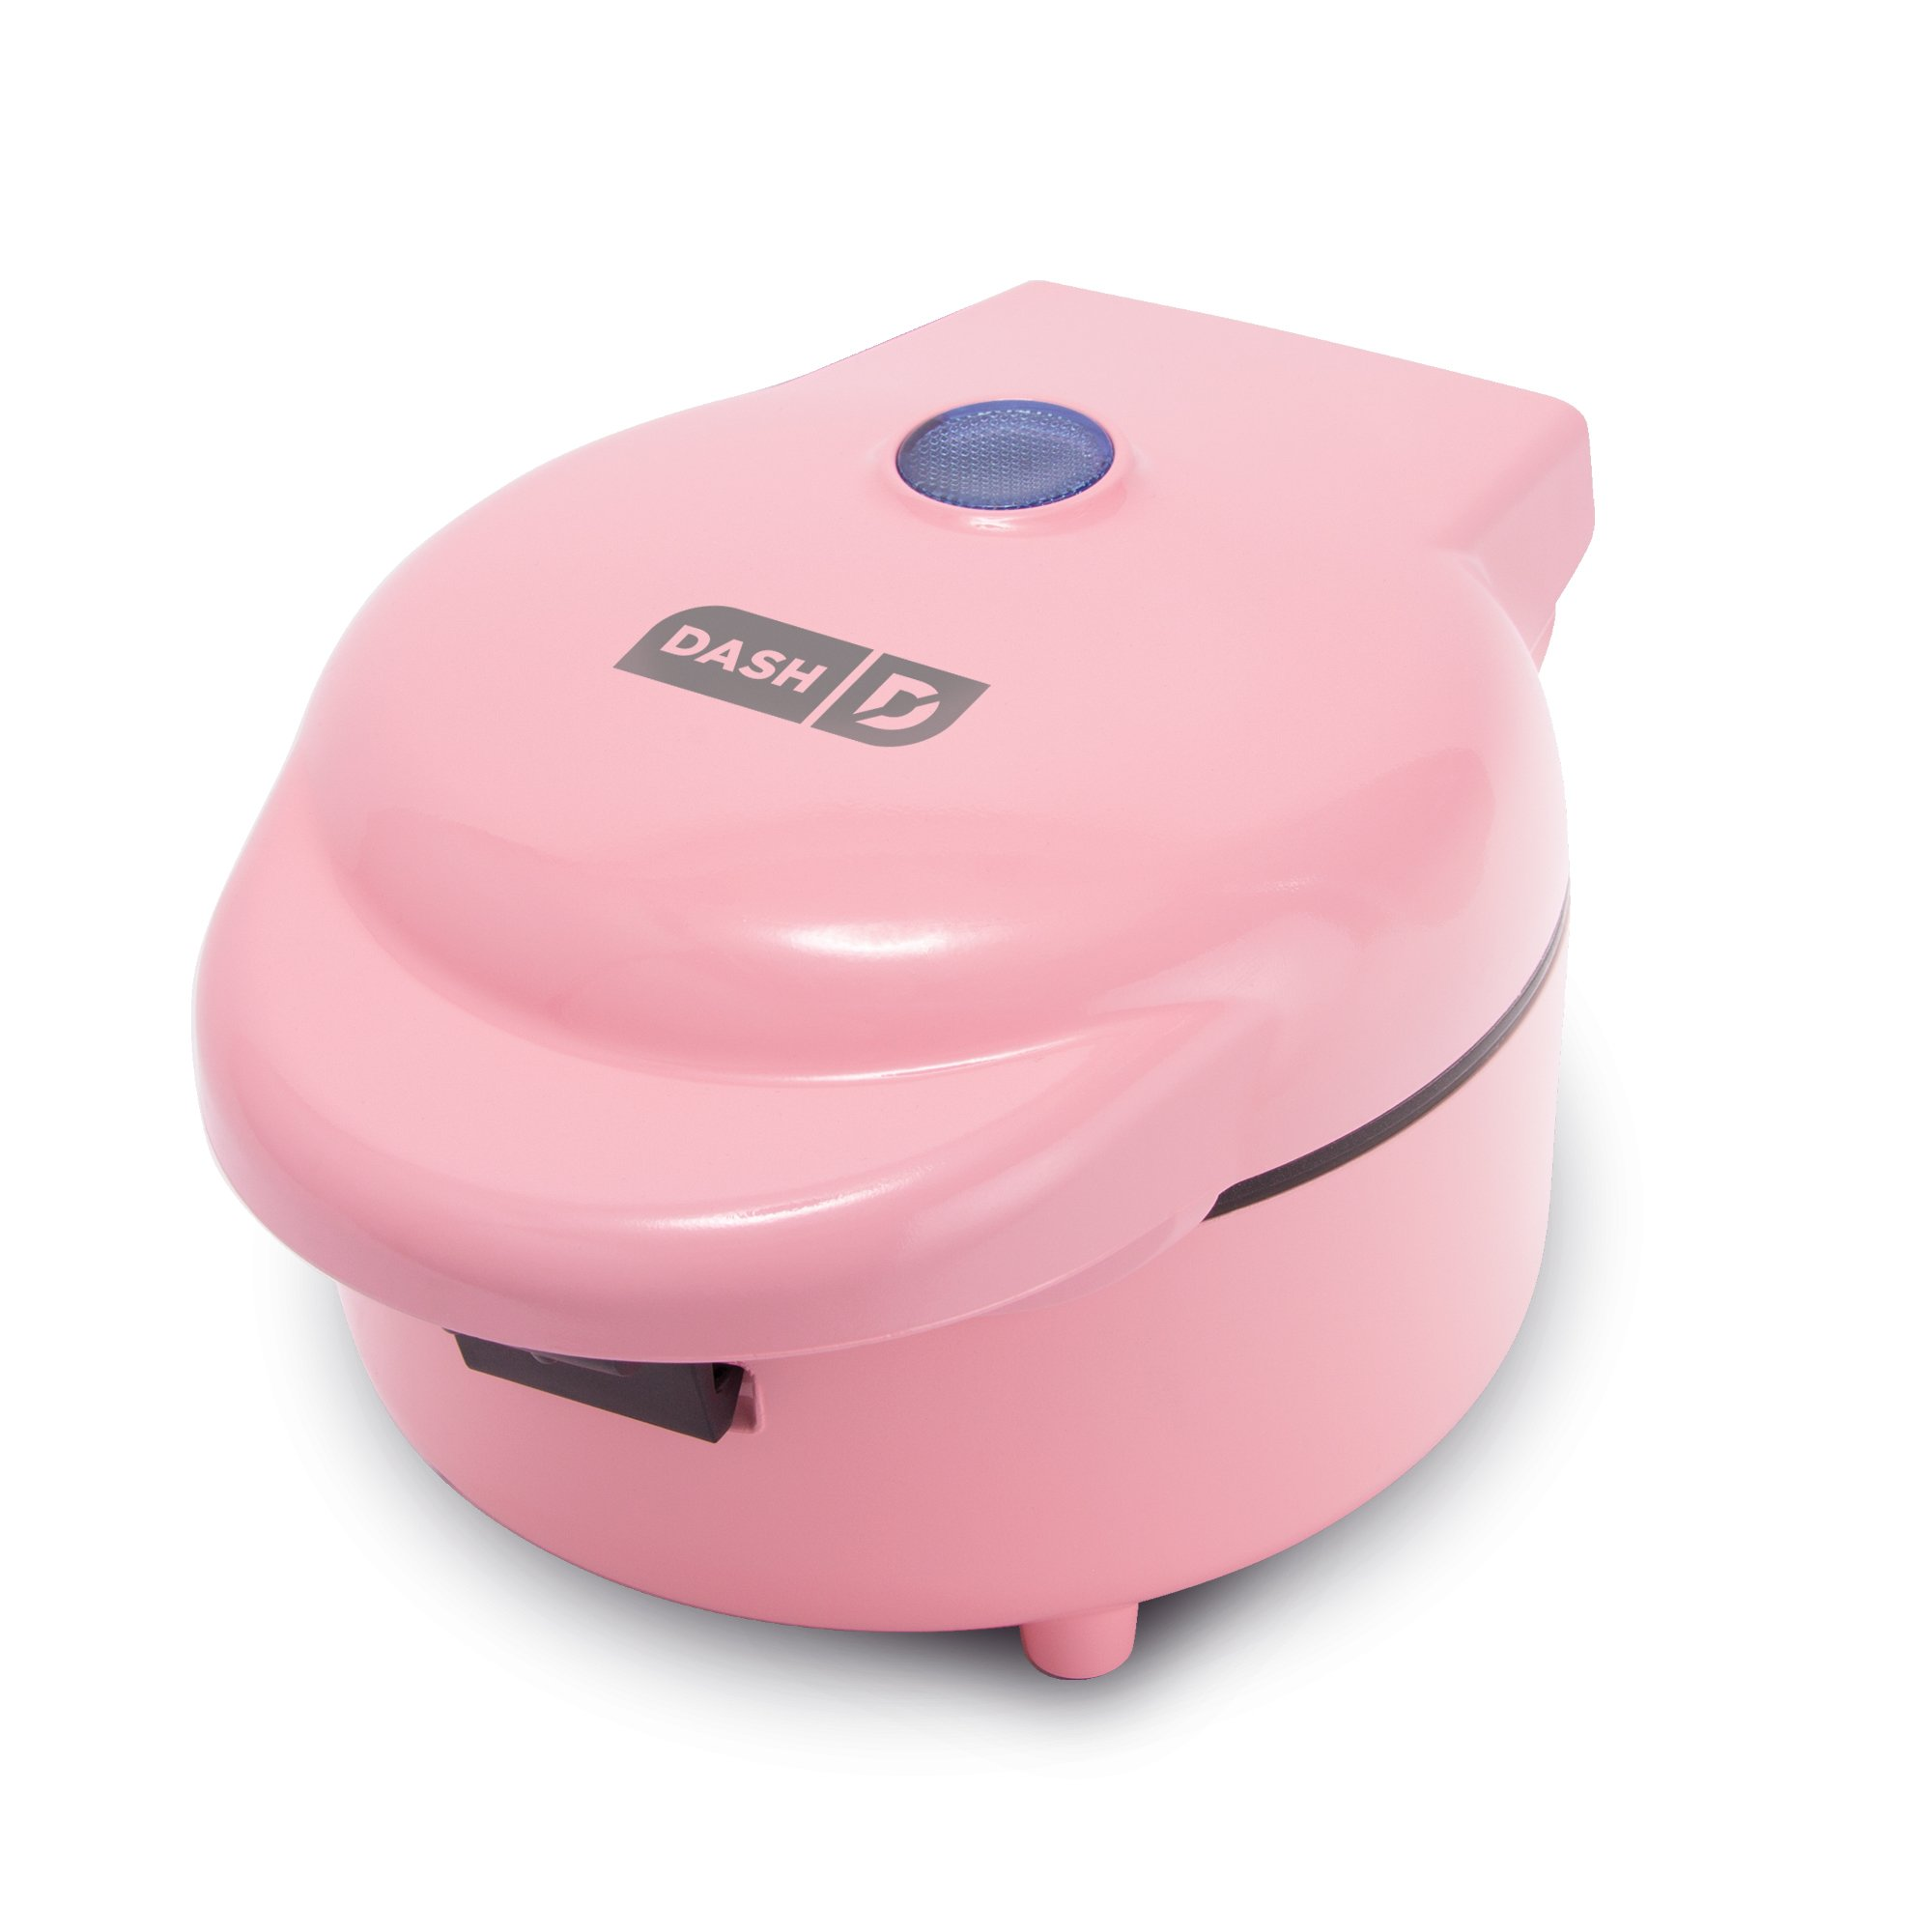 DASH Waffle Bowl Maker: The Waffle Maker Machine for Individual Waffle Bowls, Belgian Waffles, Taco Bowls, Chicken & Waffles, other Sweet or Savory Treats - Pink